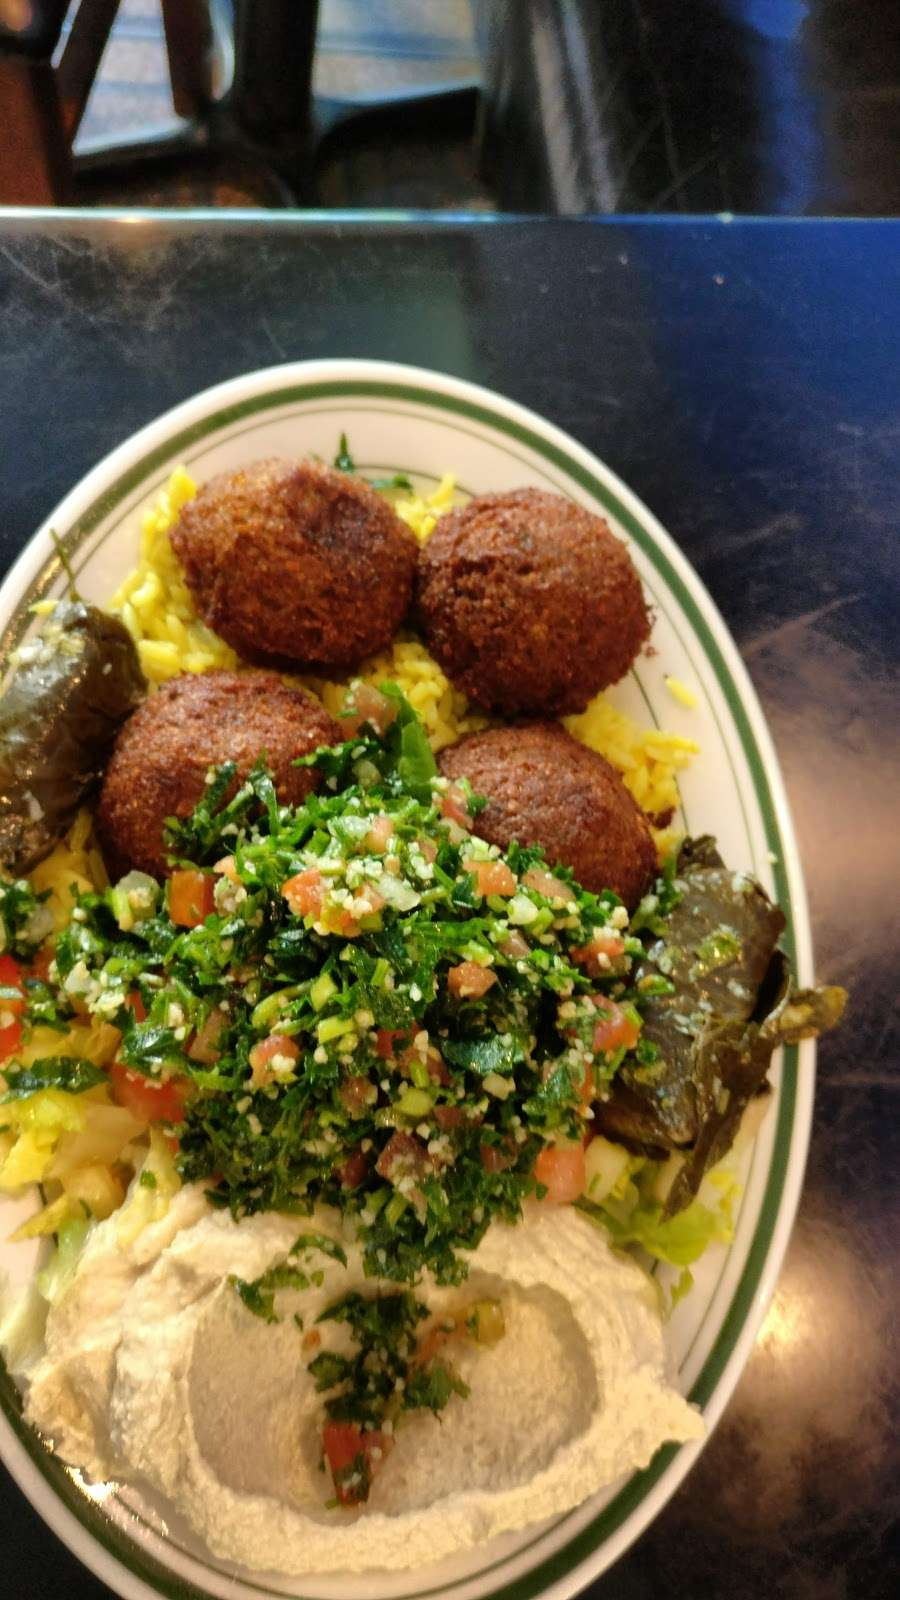 Heights Falafel - restaurant  | Photo 8 of 10 | Address: 78 Henry St, Brooklyn, NY 11201, USA | Phone: (718) 488-0808